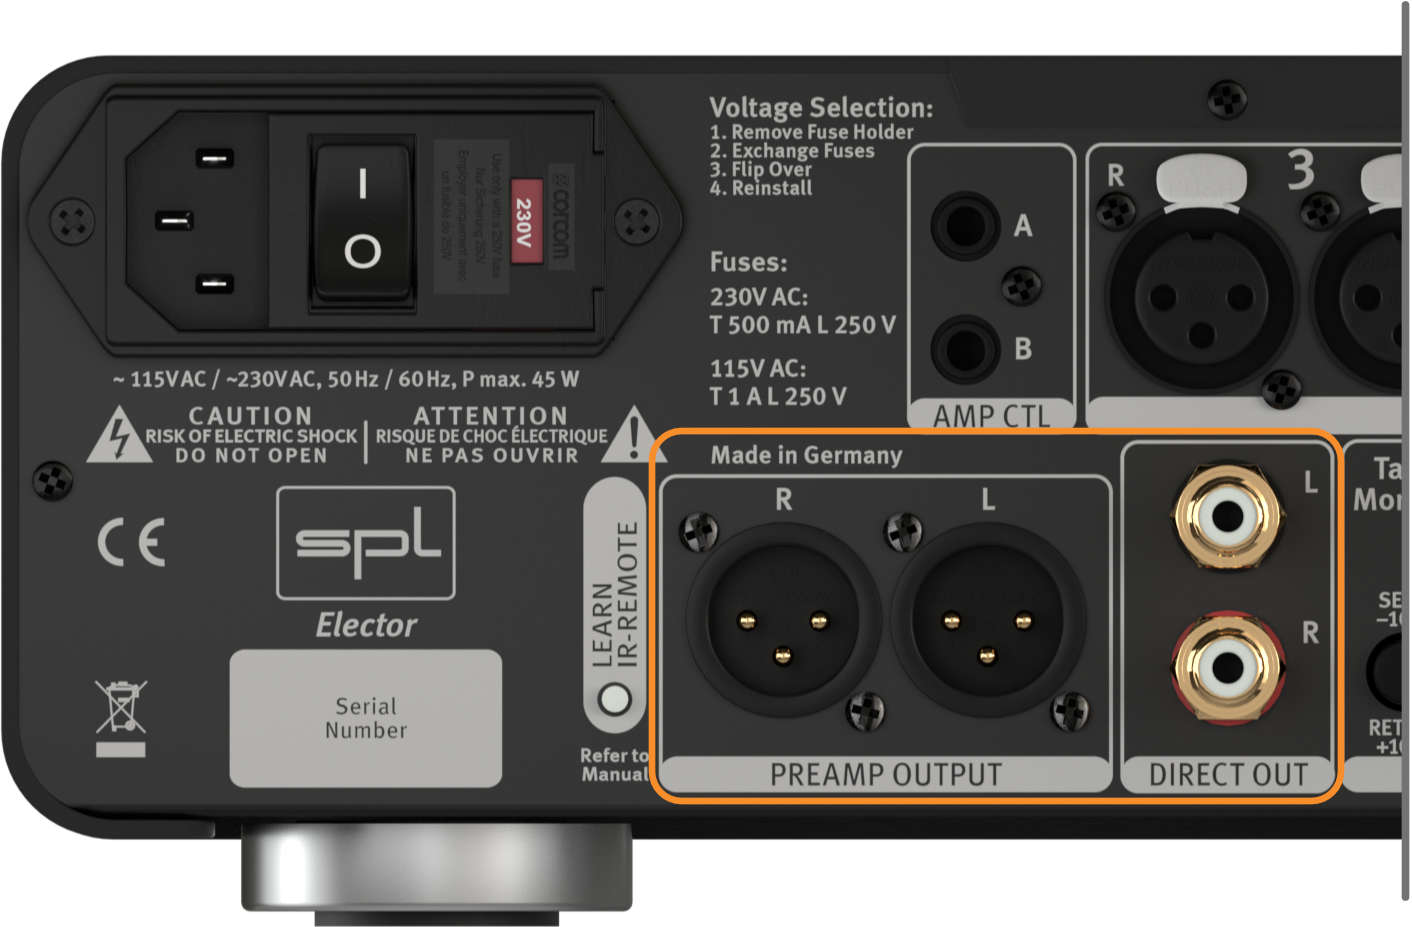 SPL Elector, Preamp & Direct Out